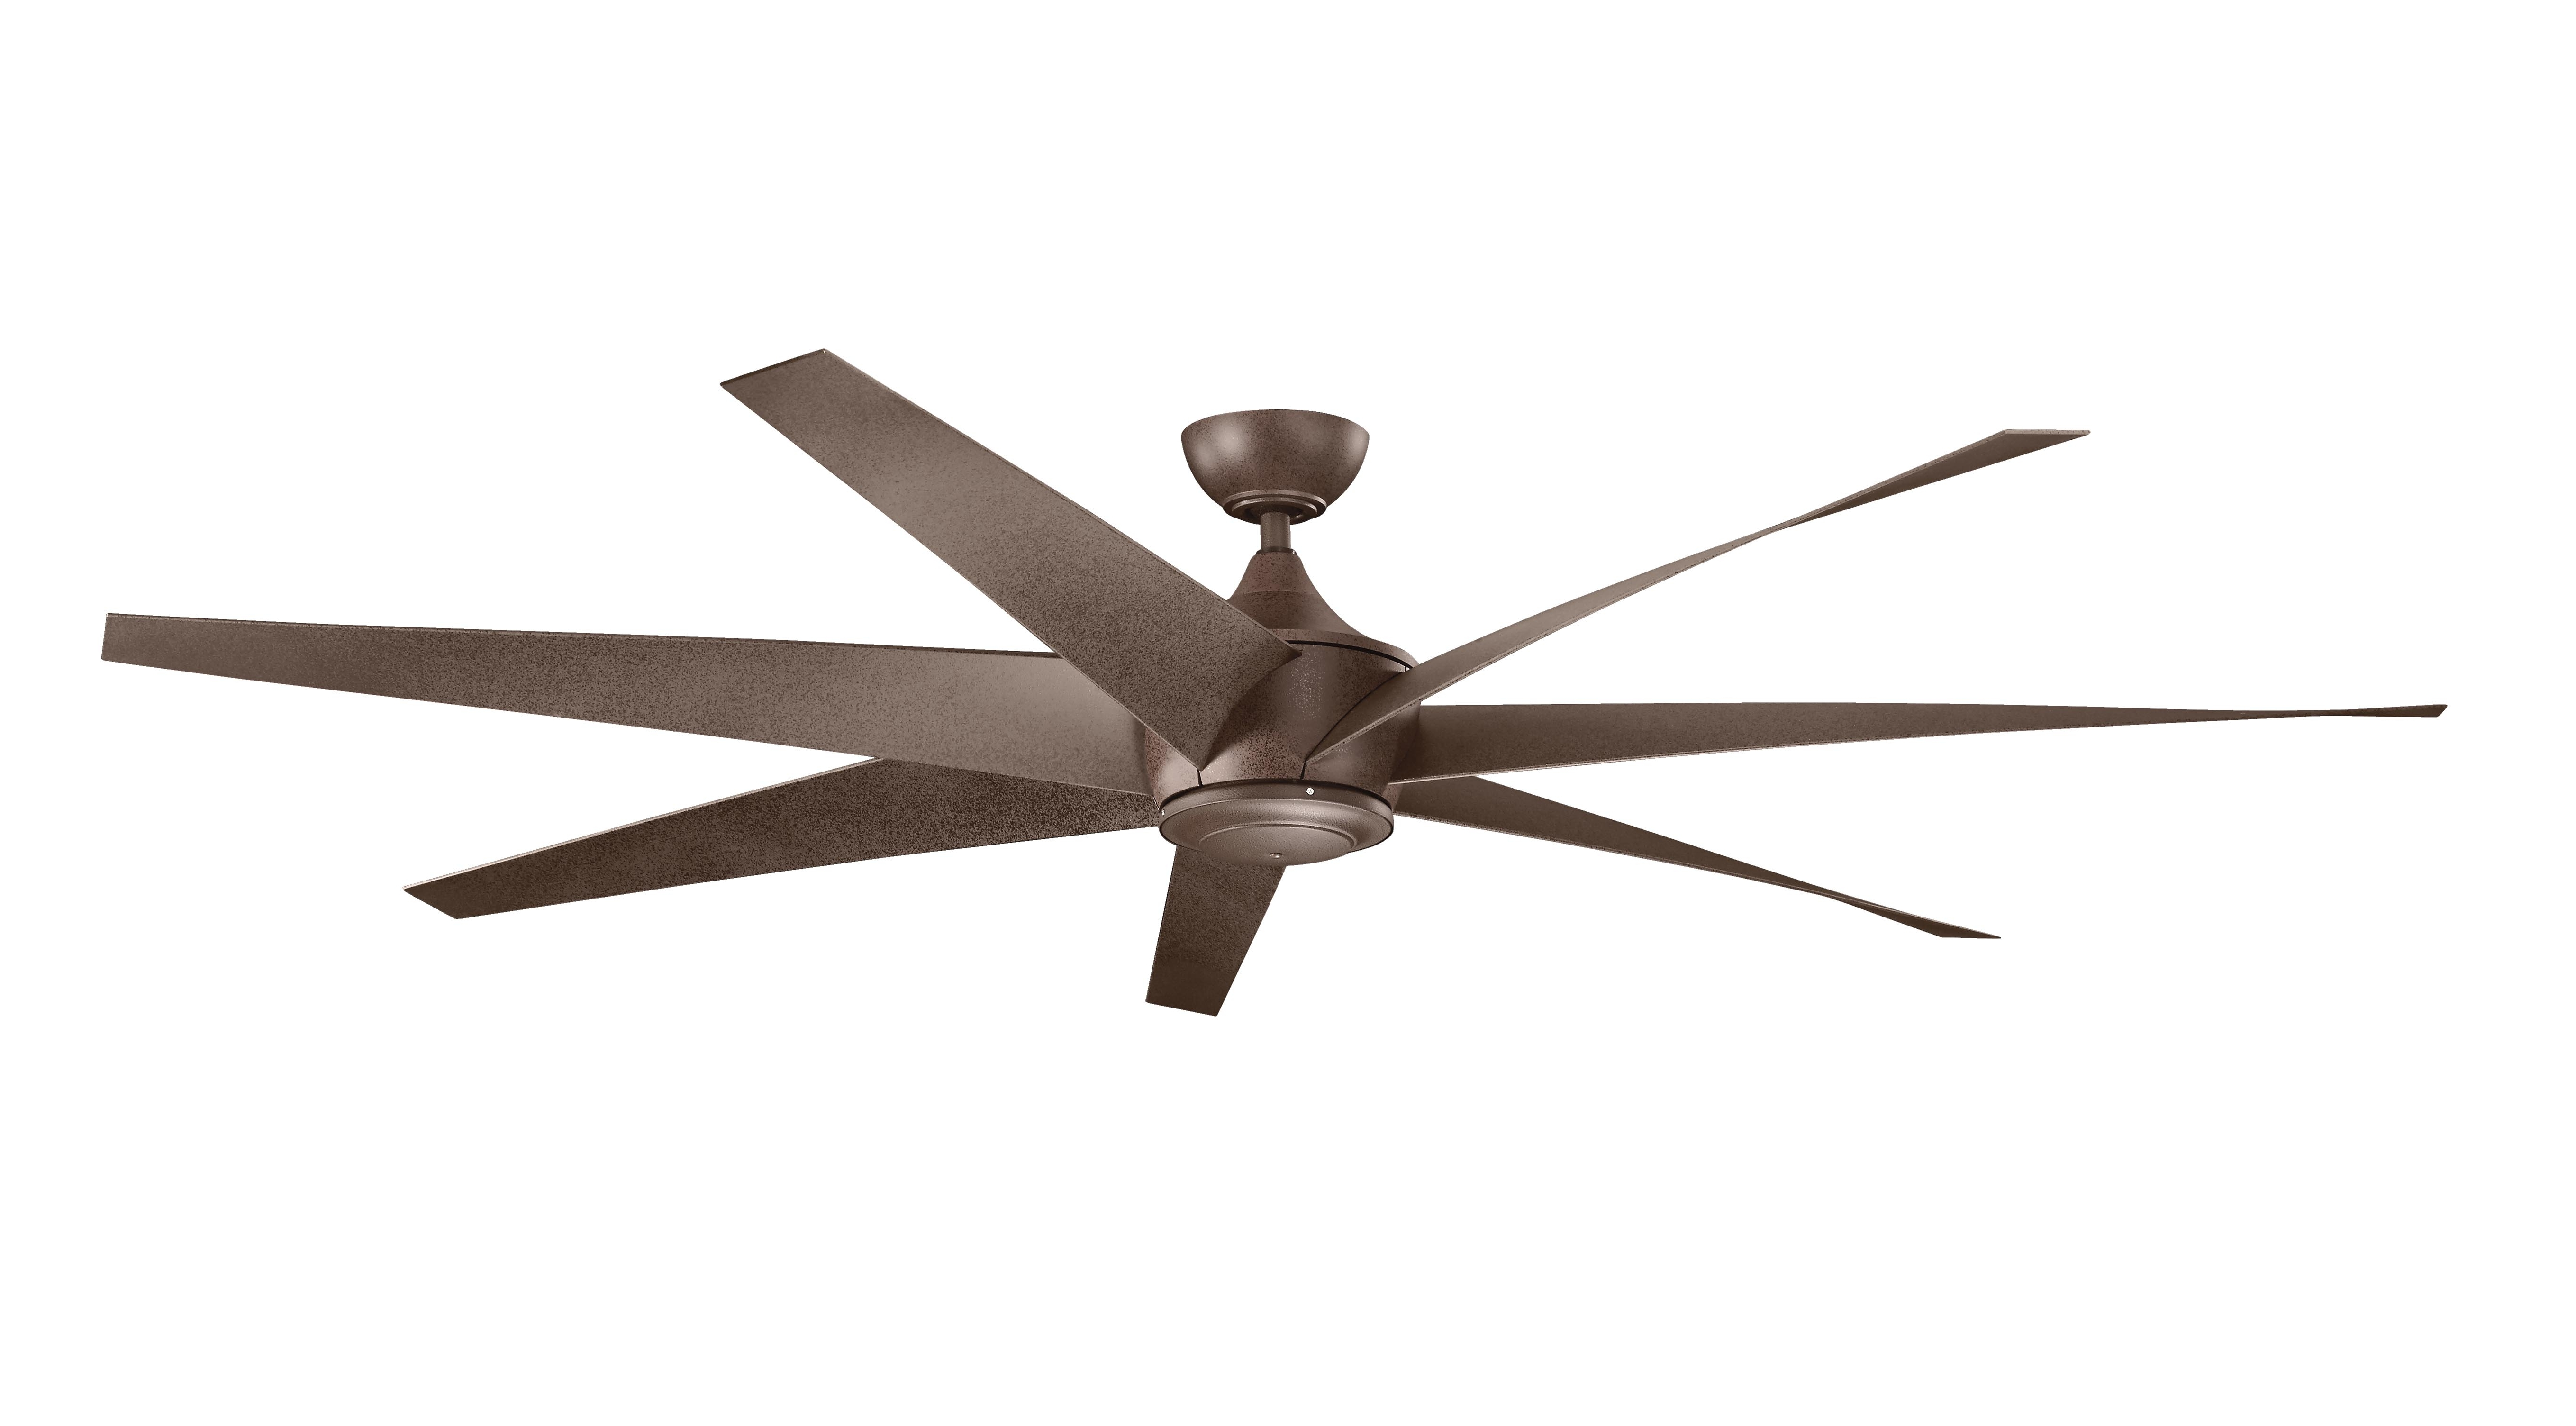 Fashionable Kichler Lehr Wet Climate Dc Ceiling Fan – New For 2016 Throughout 72 Predator Bronze Outdoor Ceiling Fans With Light Kit (View 13 of 20)